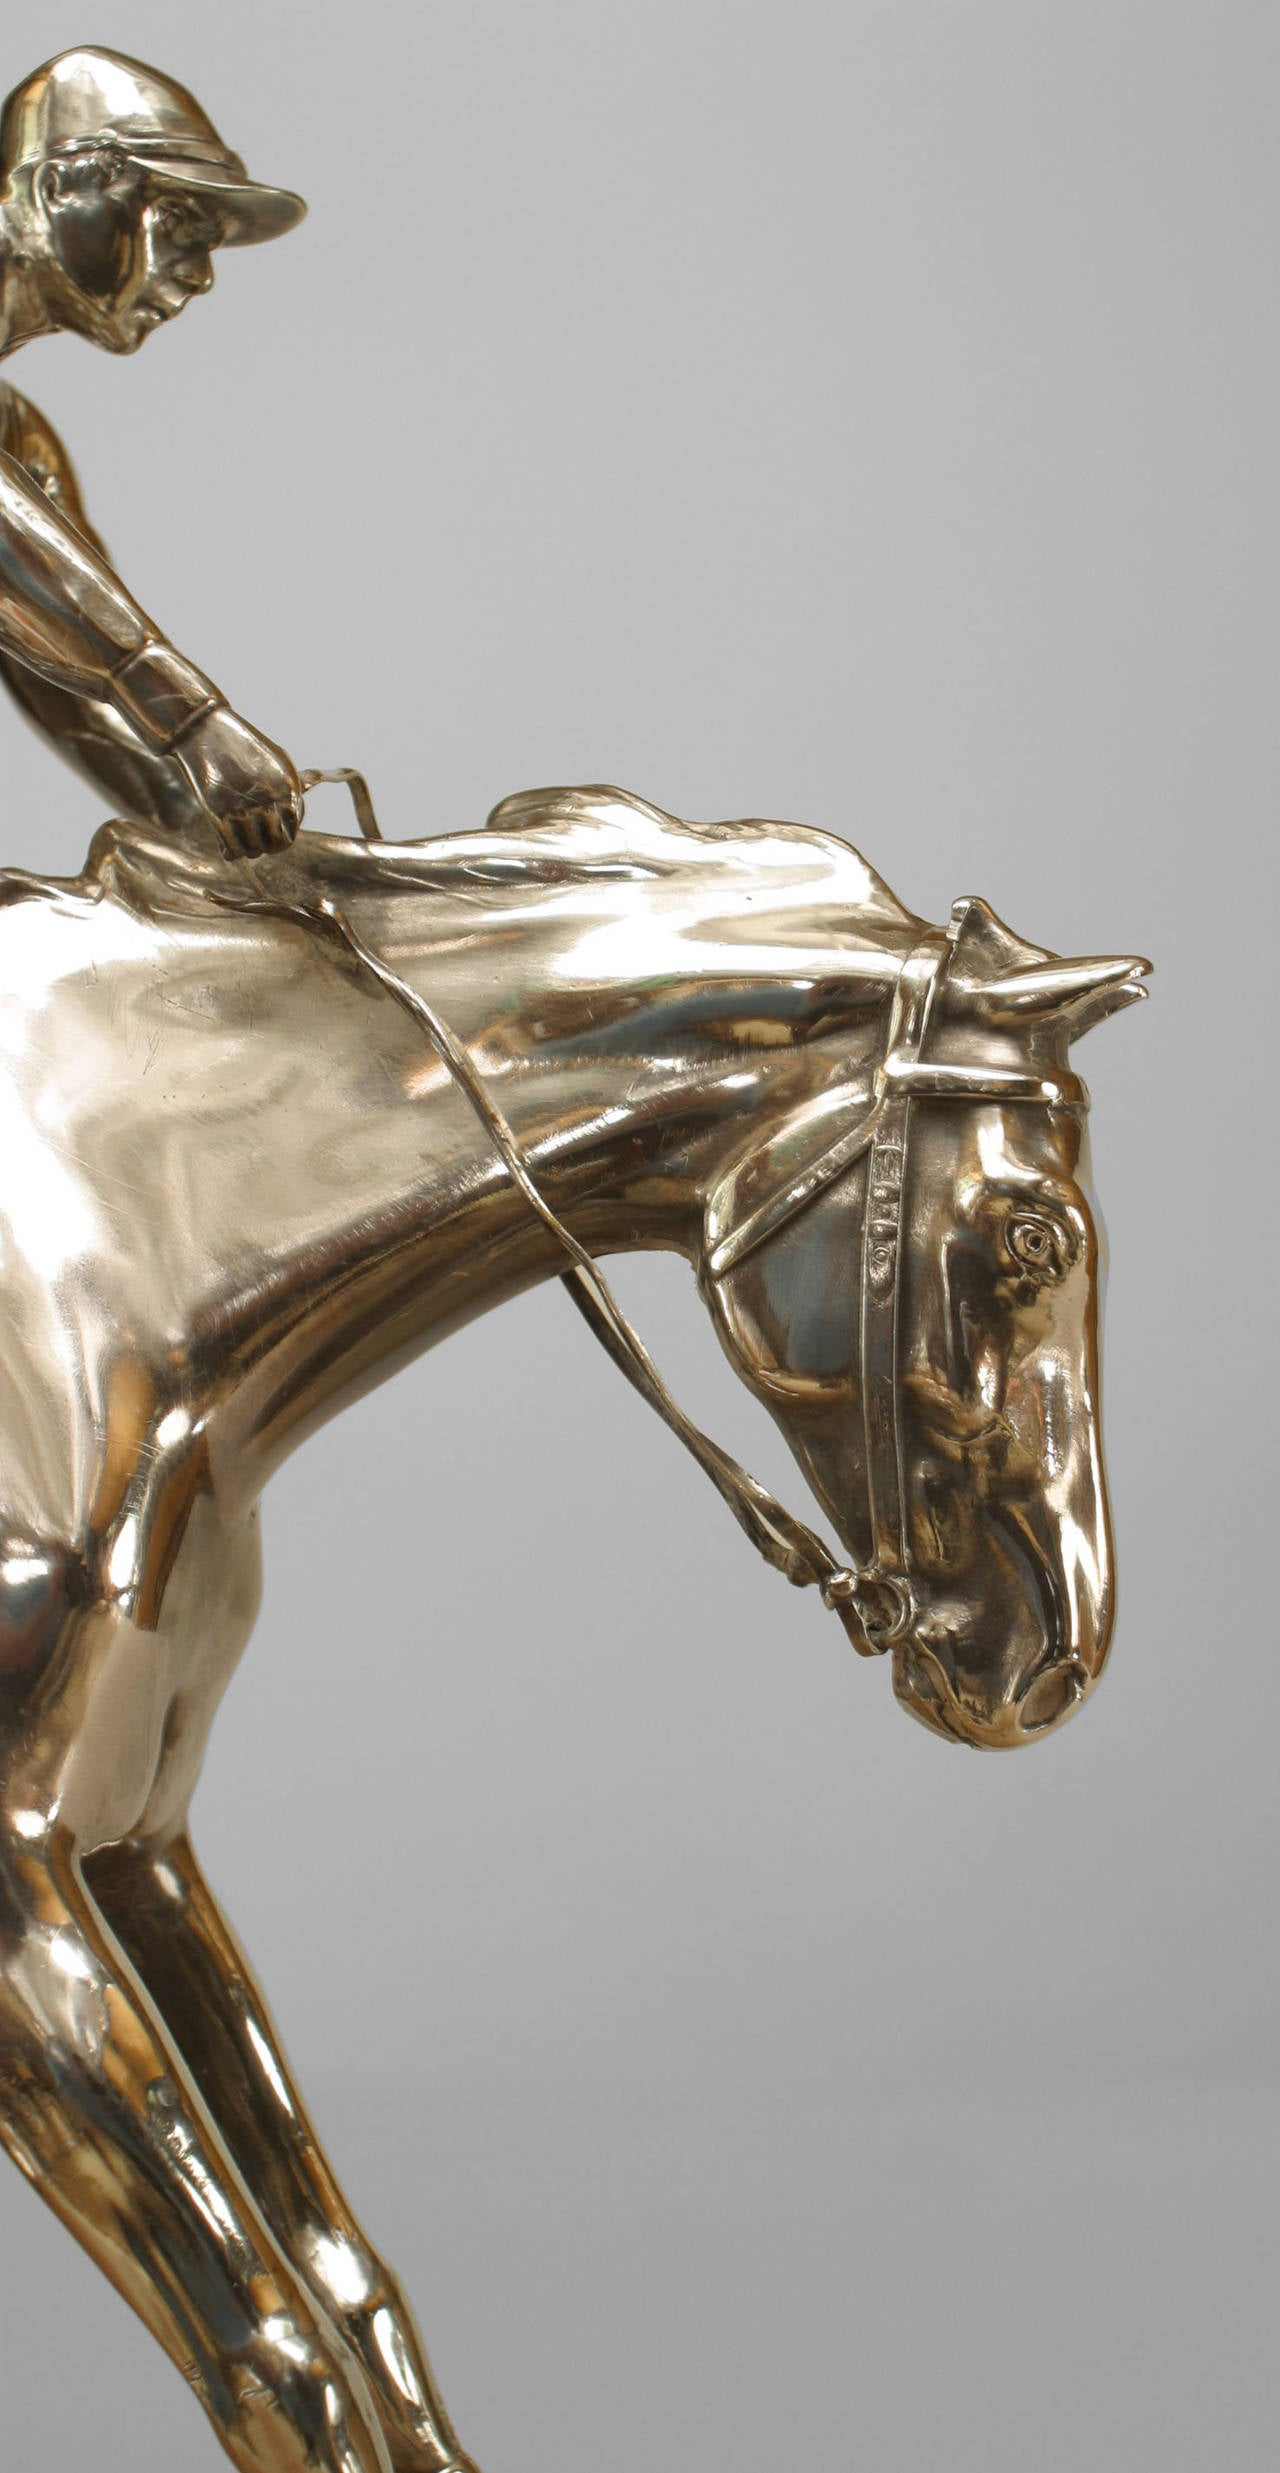 Edwardian 19th c. English Silver-Plated Bronze Horse and Jockey Sculpture For Sale